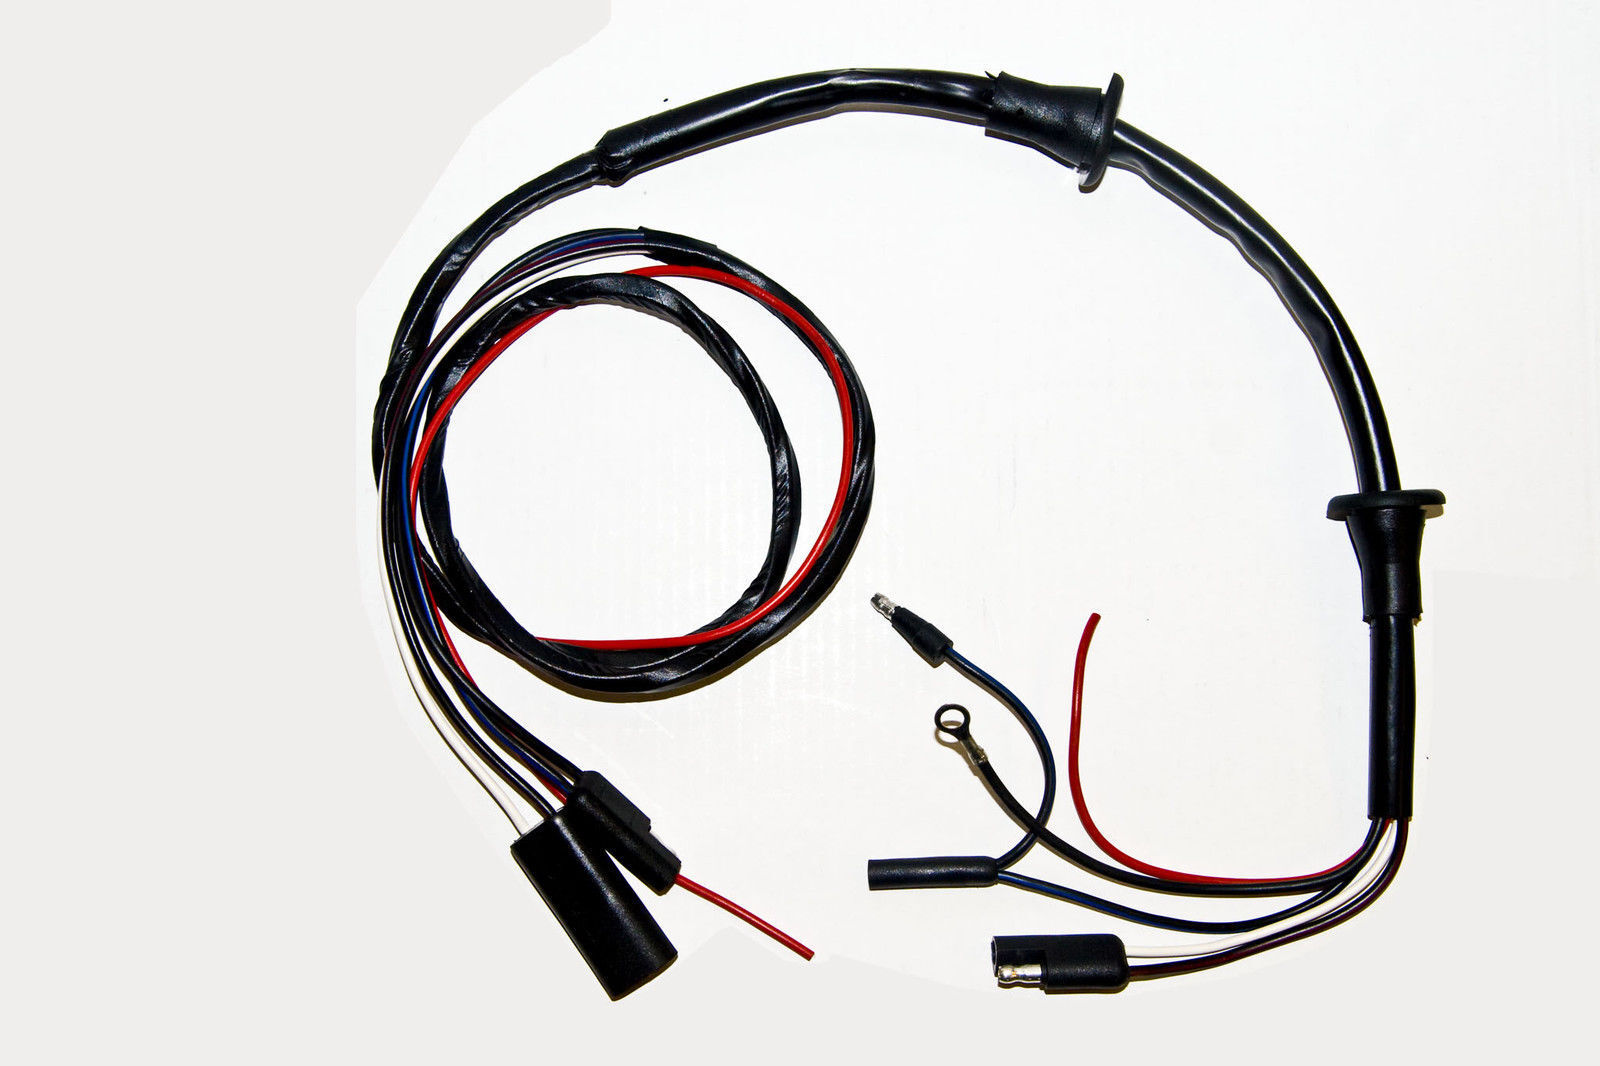 medium resolution of 1967 1968 ford mustang door courtesy light and speaker wire harness